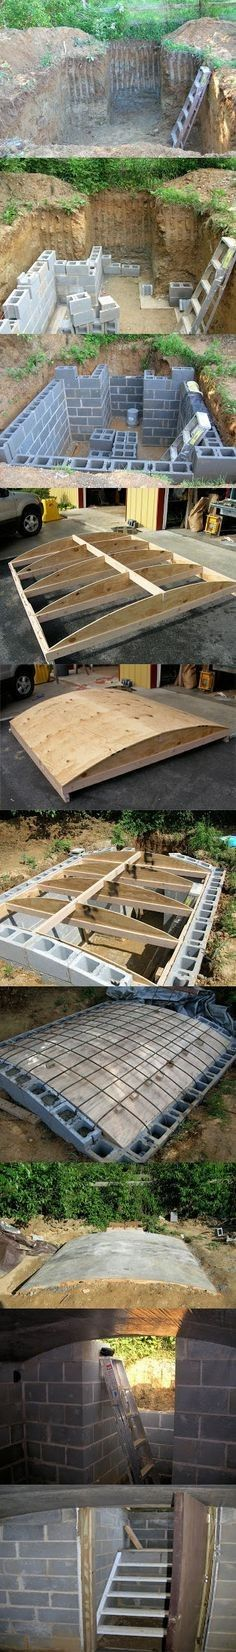 How to build a cellar with your own hands- Как построить погреб своими руками How to build a cellar with your own hands - Outdoor Projects, Home Projects, Casa Bunker, Future House, My House, Underground Shelter, Garden Design, House Design, Root Cellar